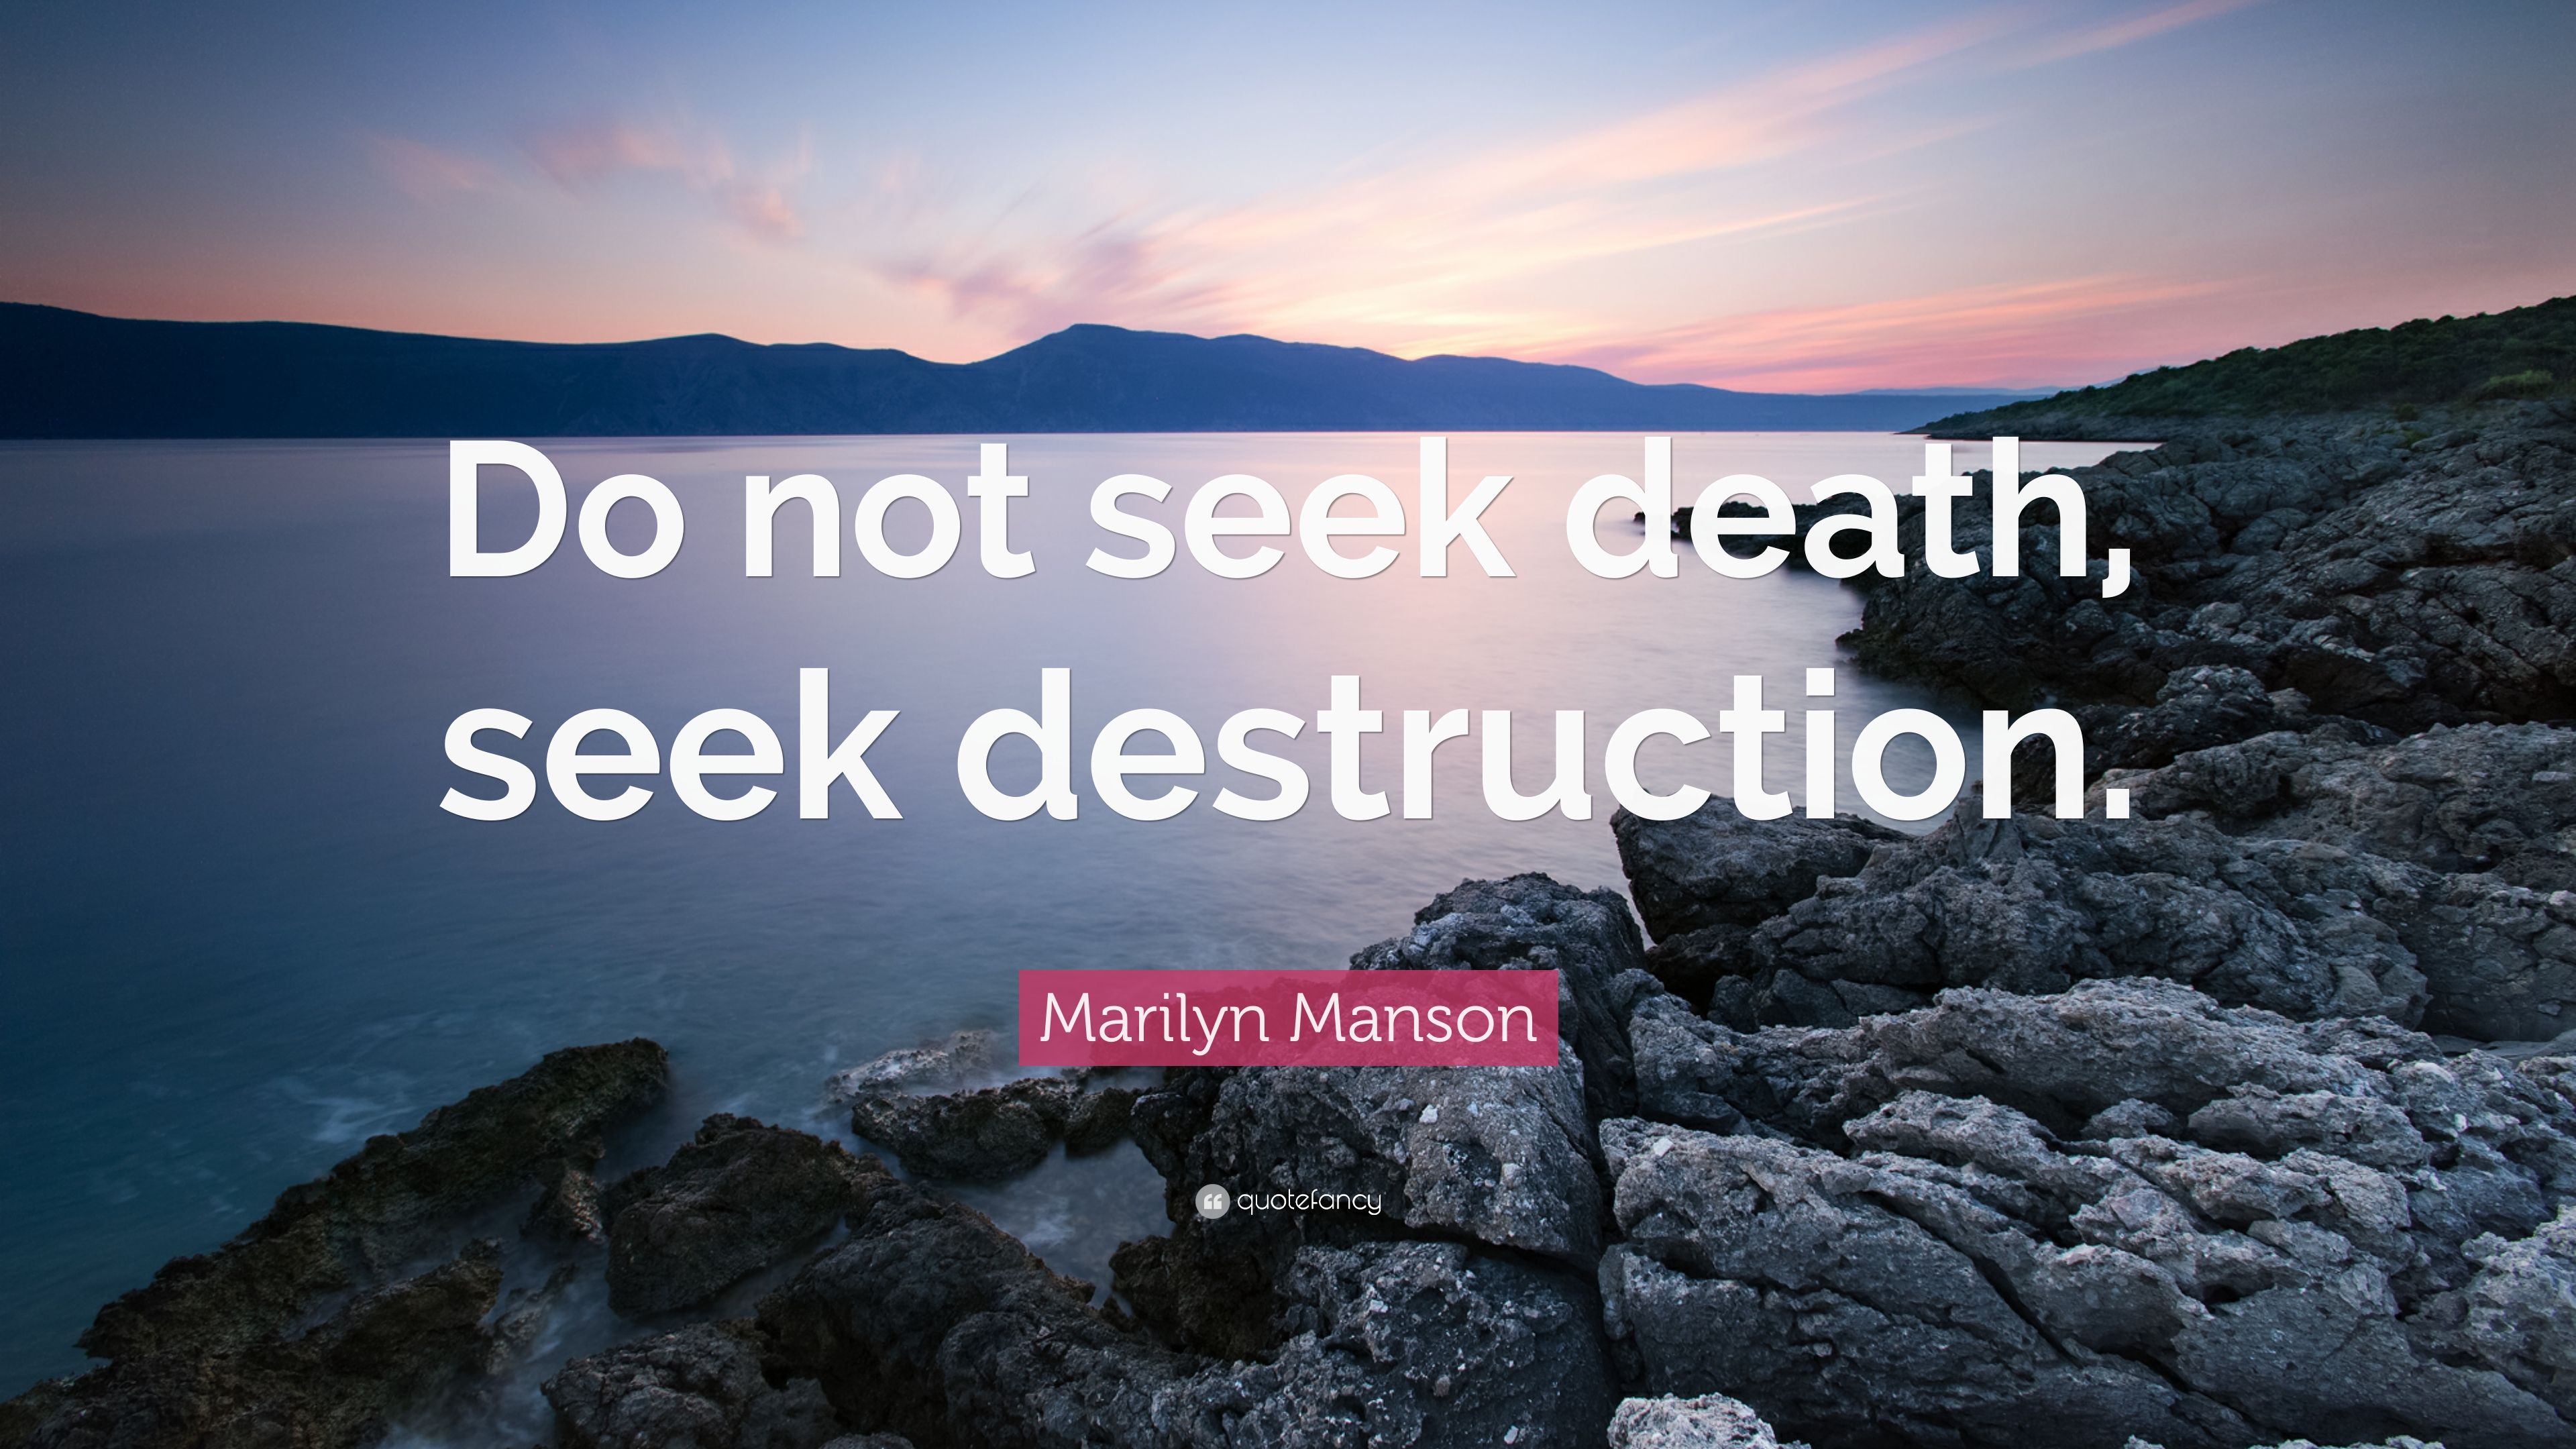 Charmant Marilyn Manson Quote: U201cDo Not Seek Death, Seek Destruction.u201d